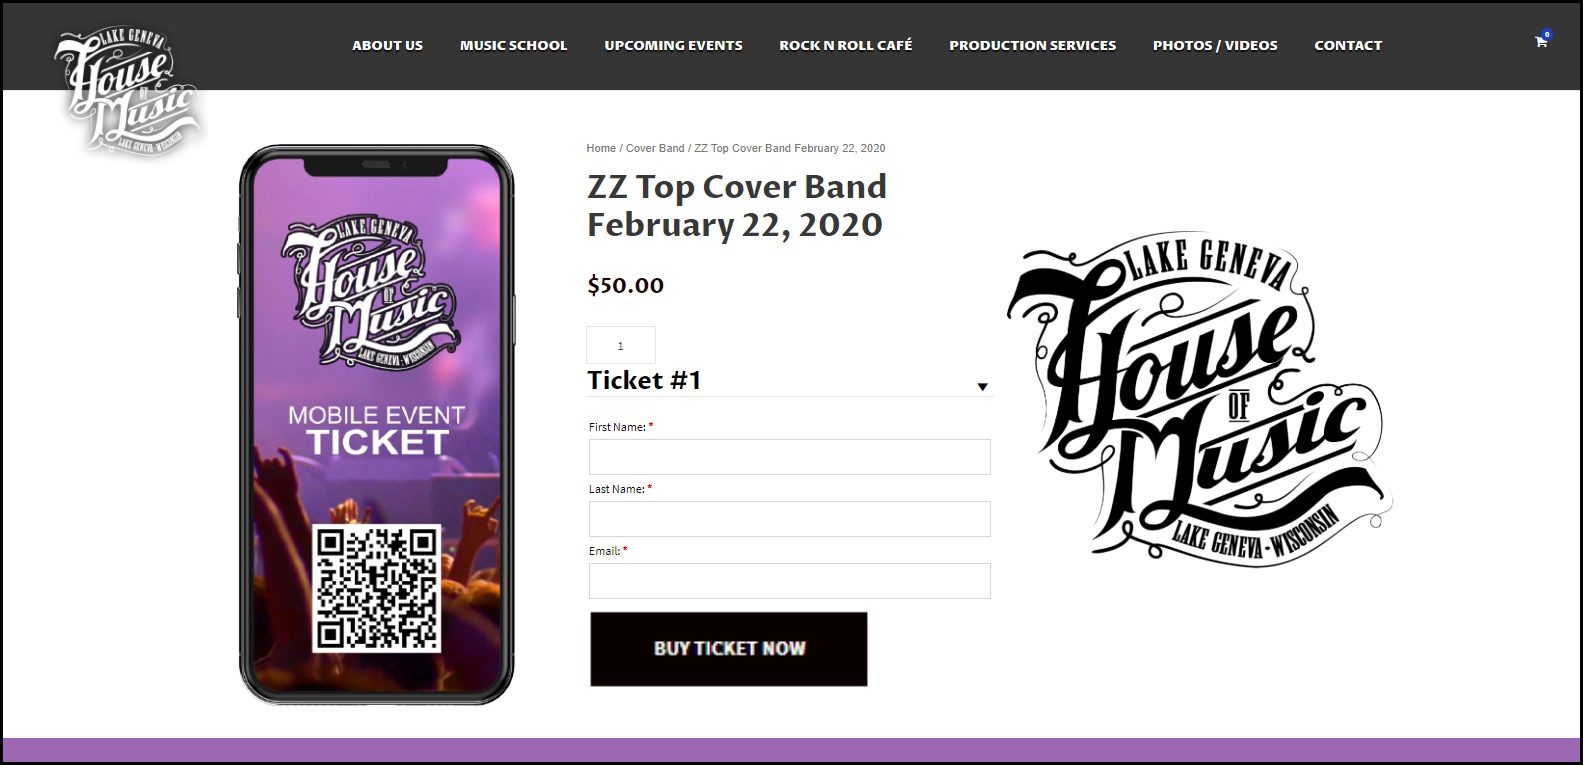 House of Music Mobile Ticket